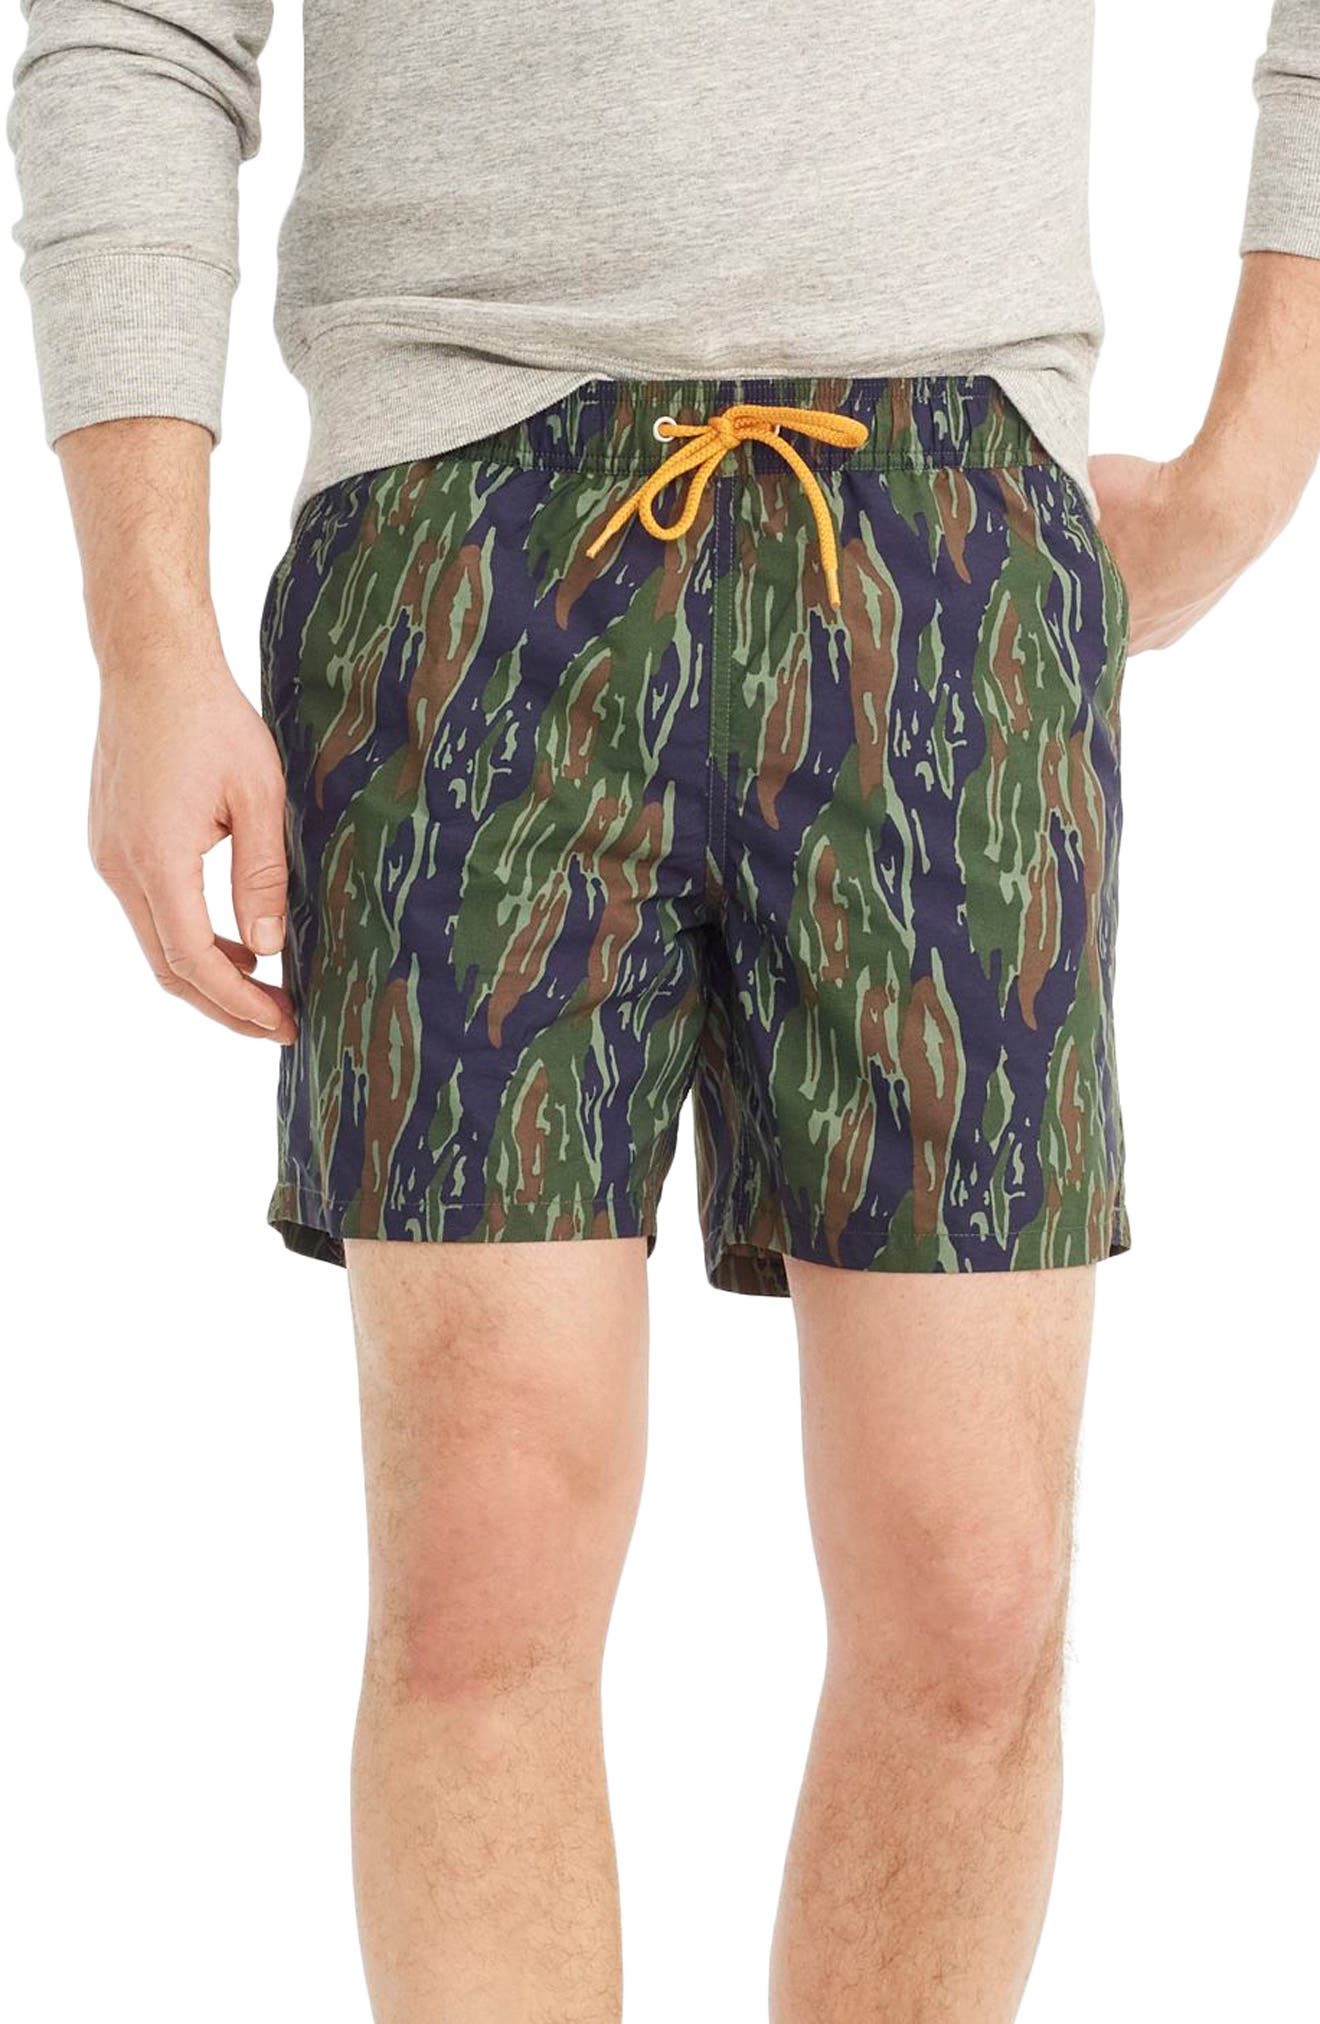 J.Crew Camo Swim Trunks,                         Main,                         color, Tiger Stripe Camo